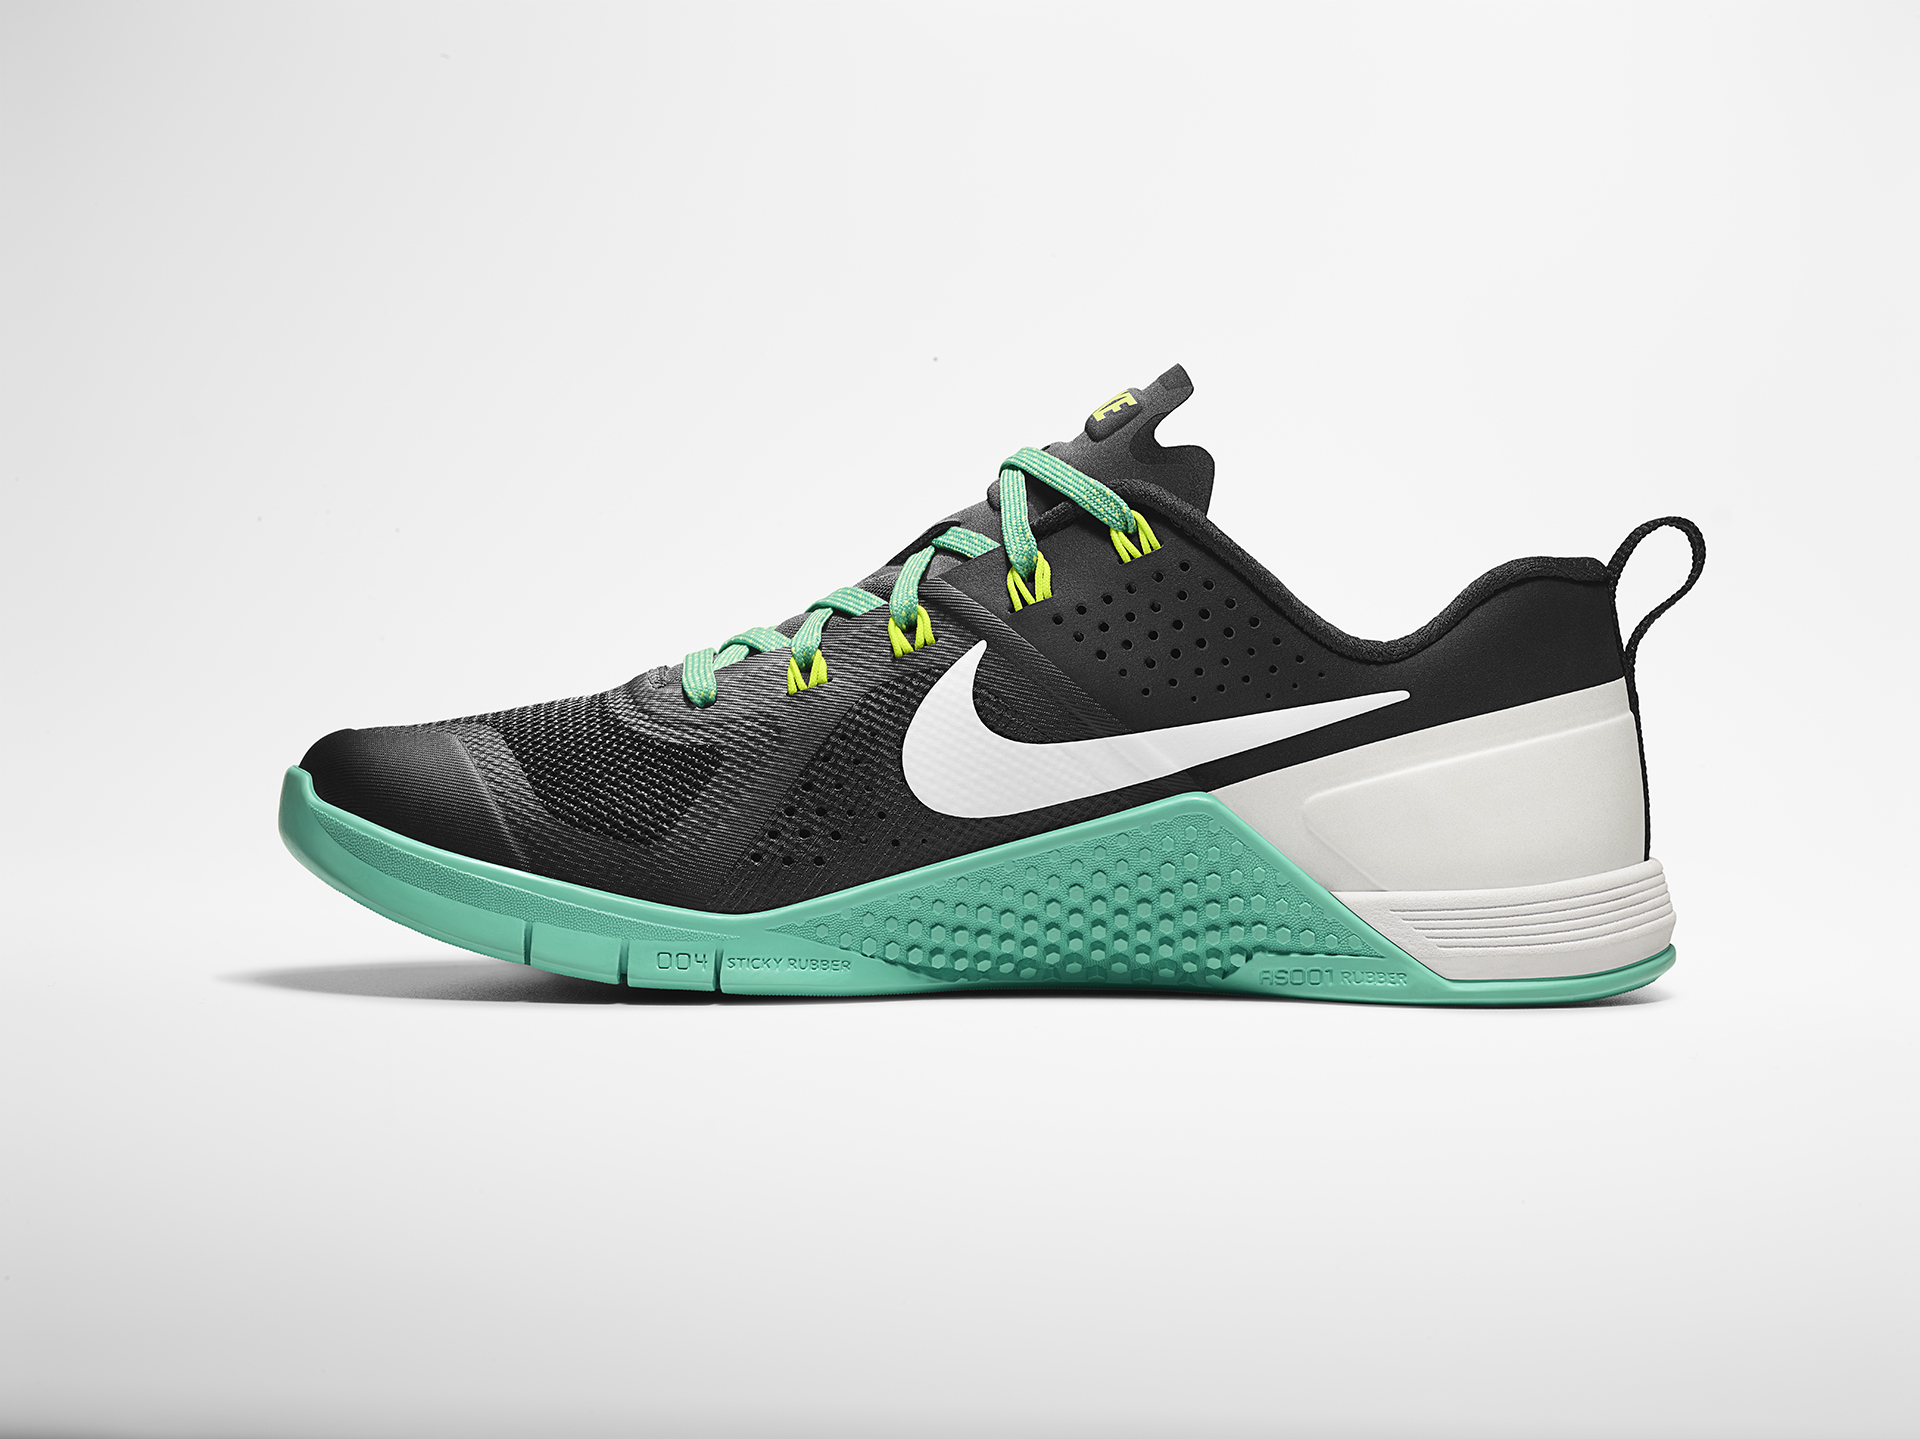 ... in her new Nike Metcon Shoes. Download Image: LO · HI